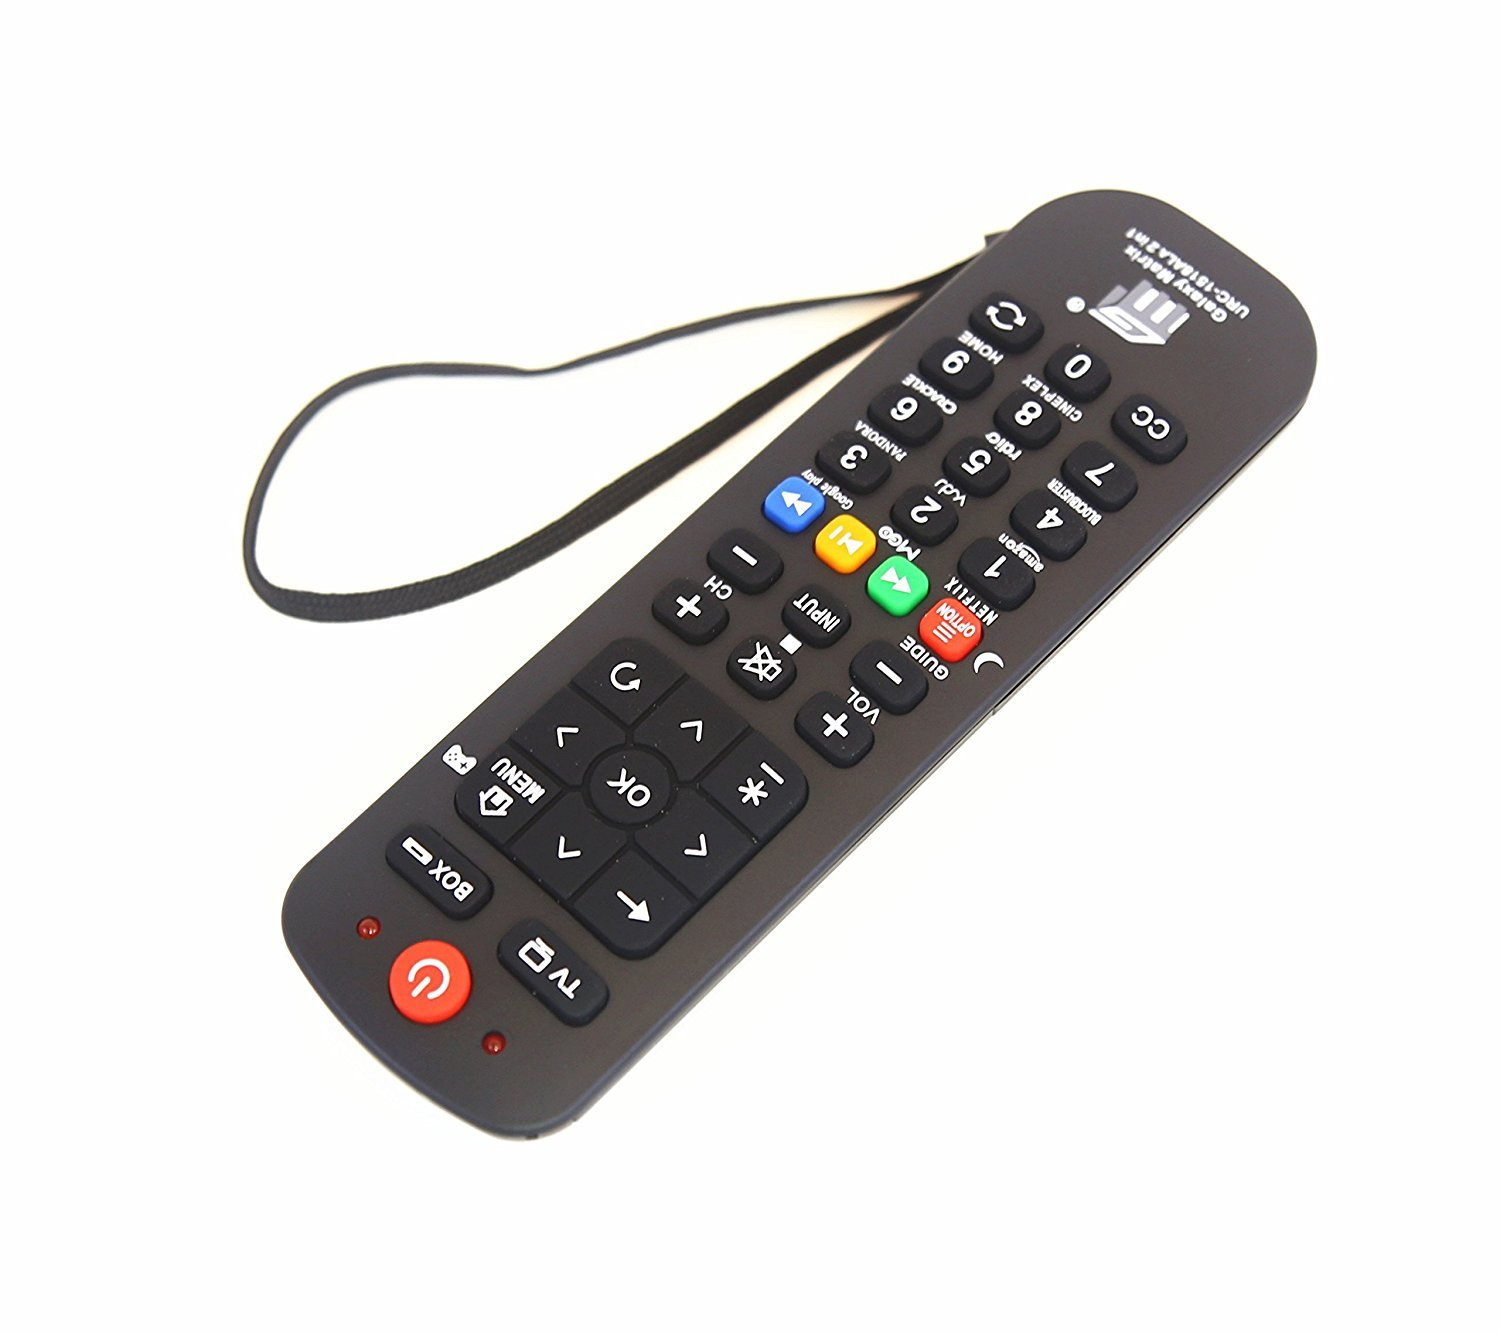 Brainly Universal Streaming Remote Work (2 in 1) for Main TV Main Streaming Box, Roku 1 2 3, Apple Tv, Vizio Smart TV,(URC1518) by Brainly (Image #2)